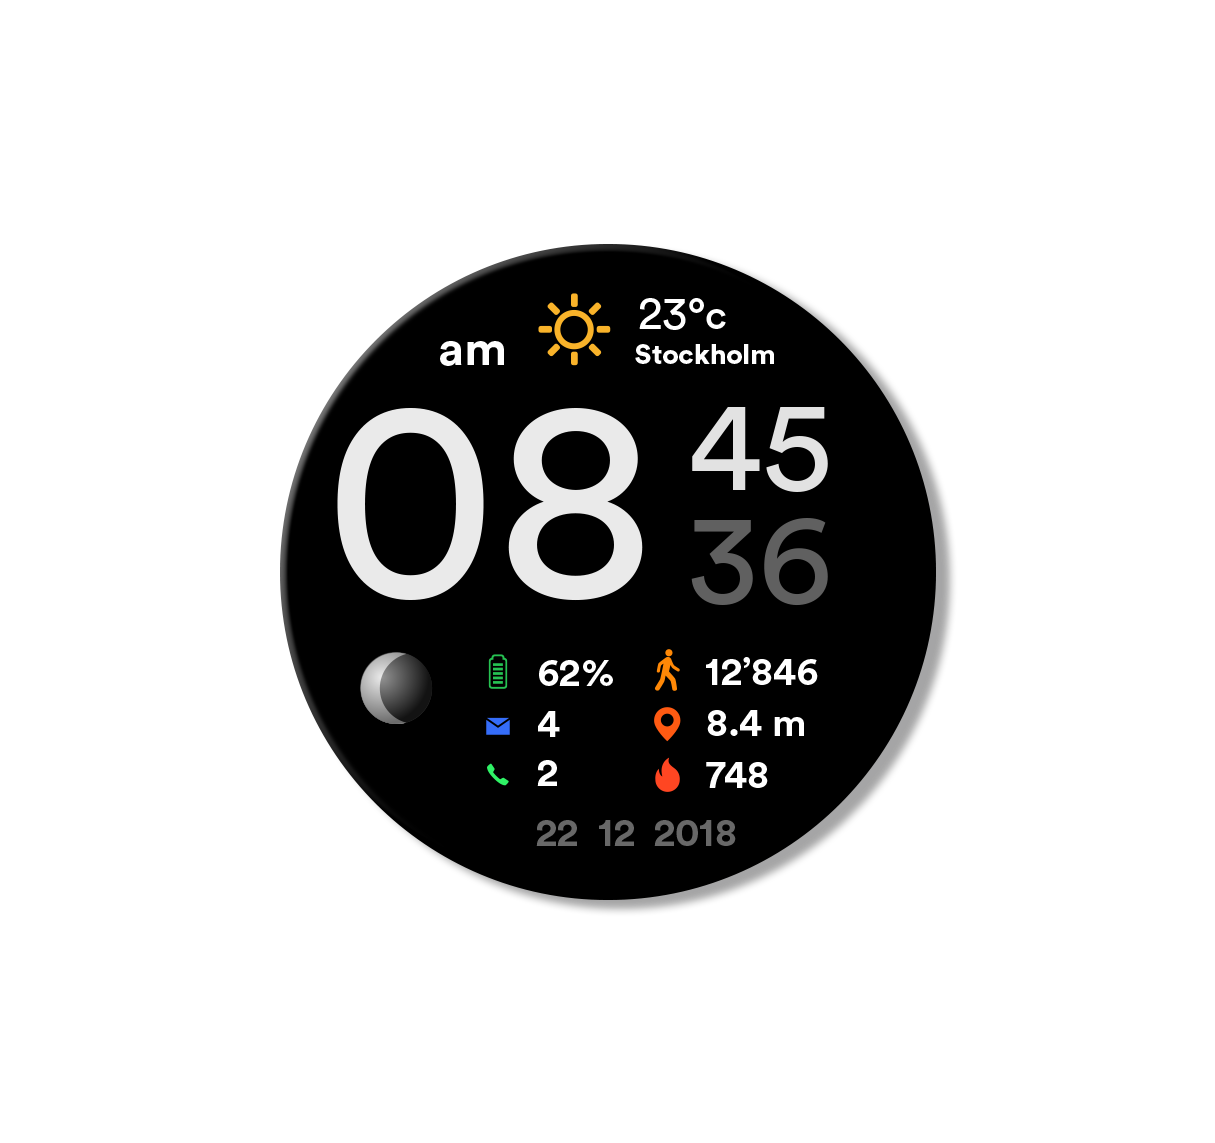 Manager Watch Face : Manager Watch Face